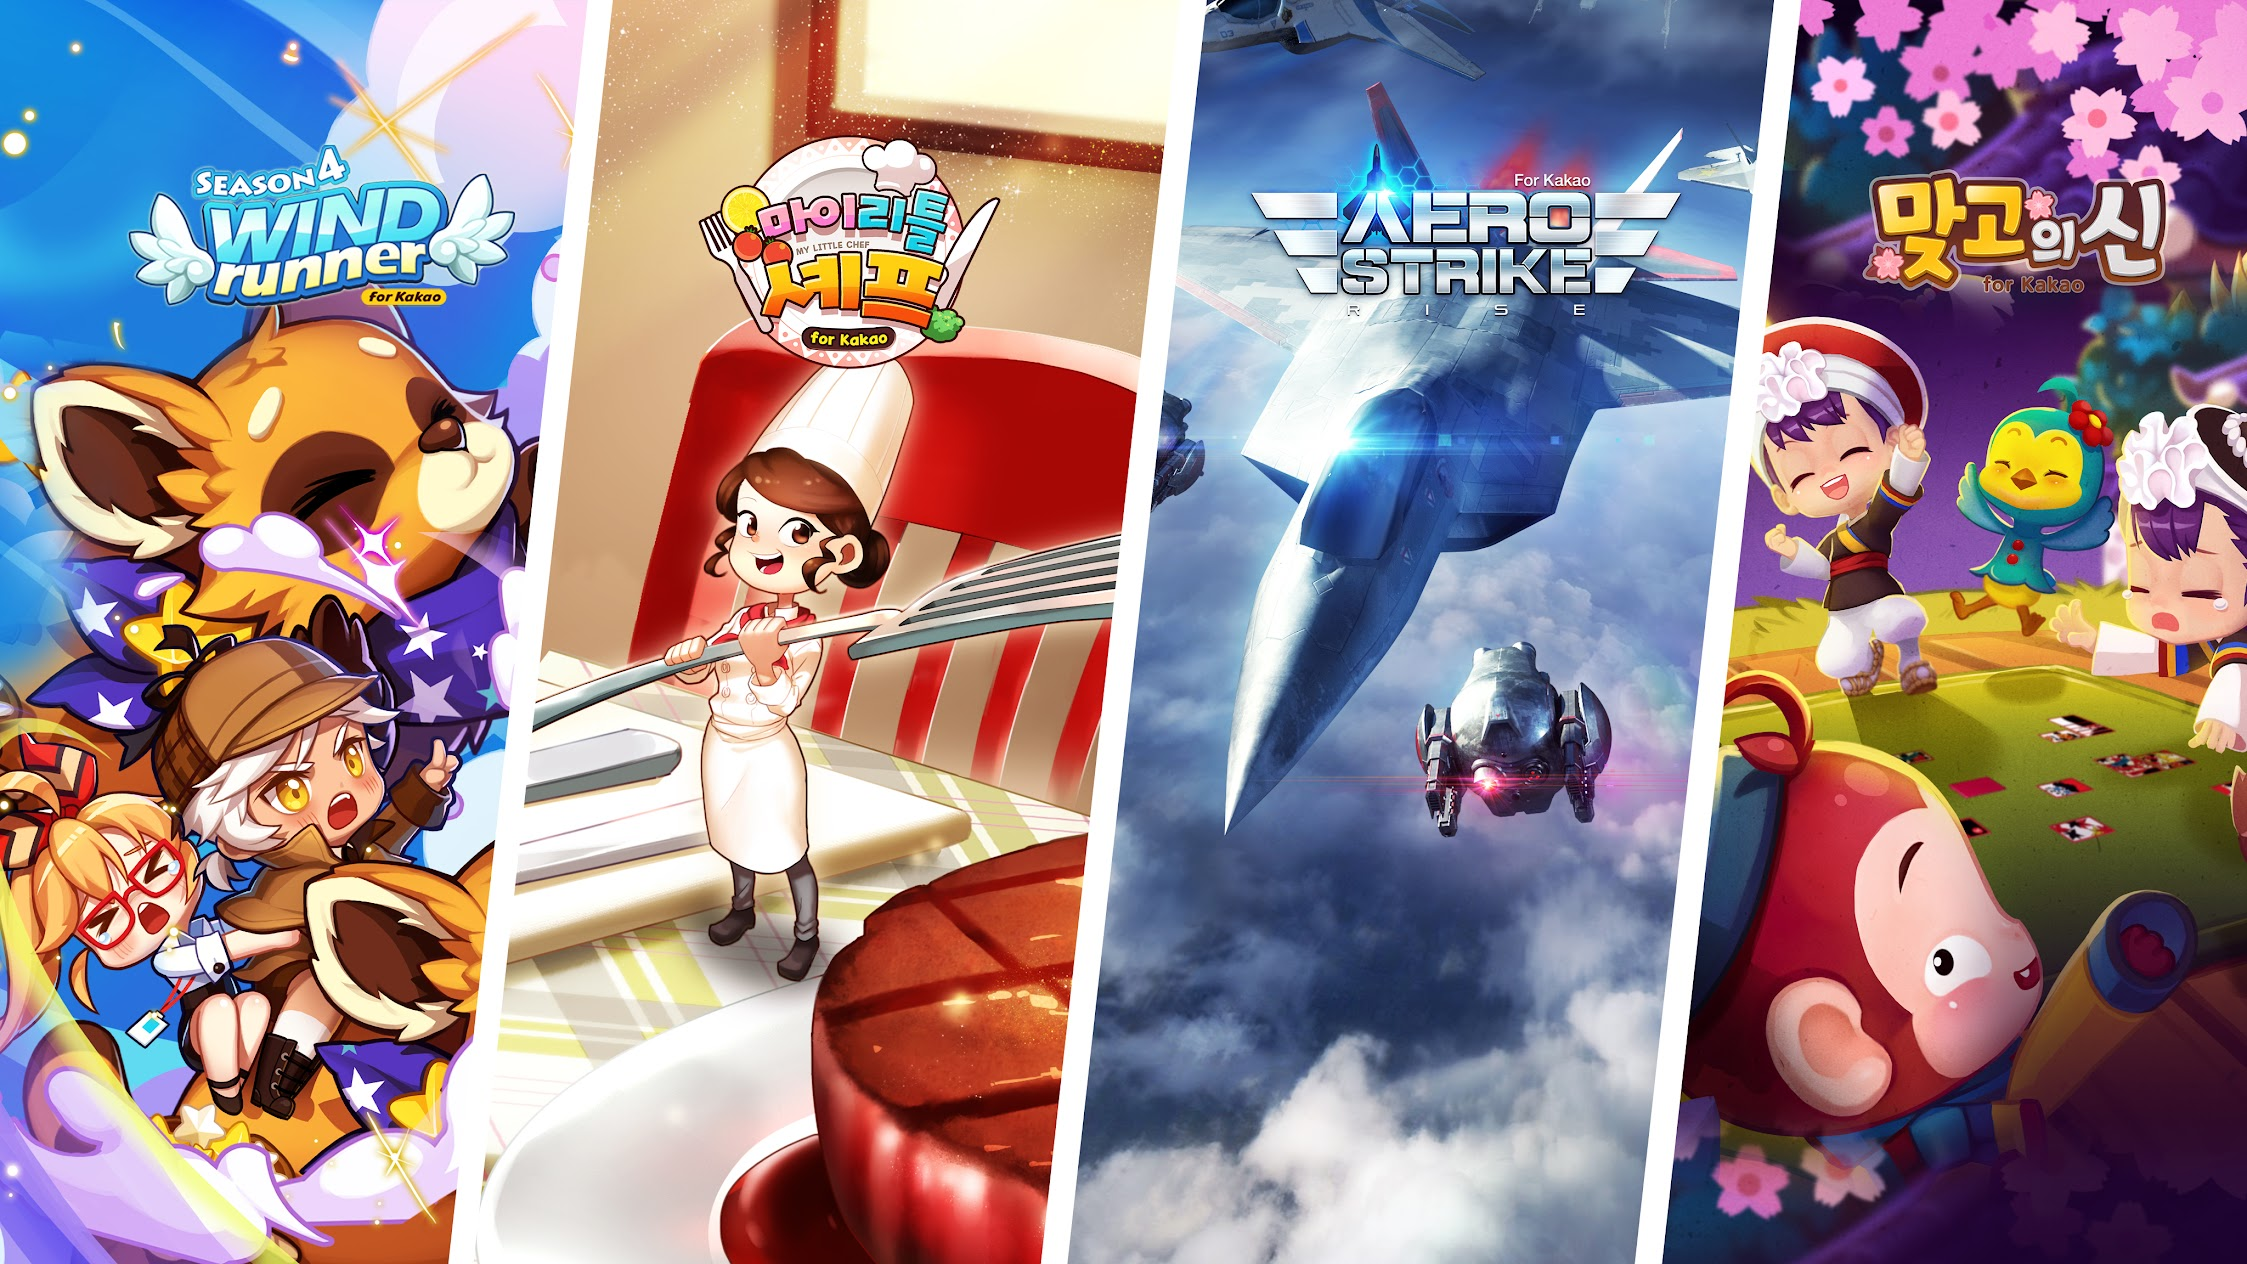 Joymax Co., Ltd.